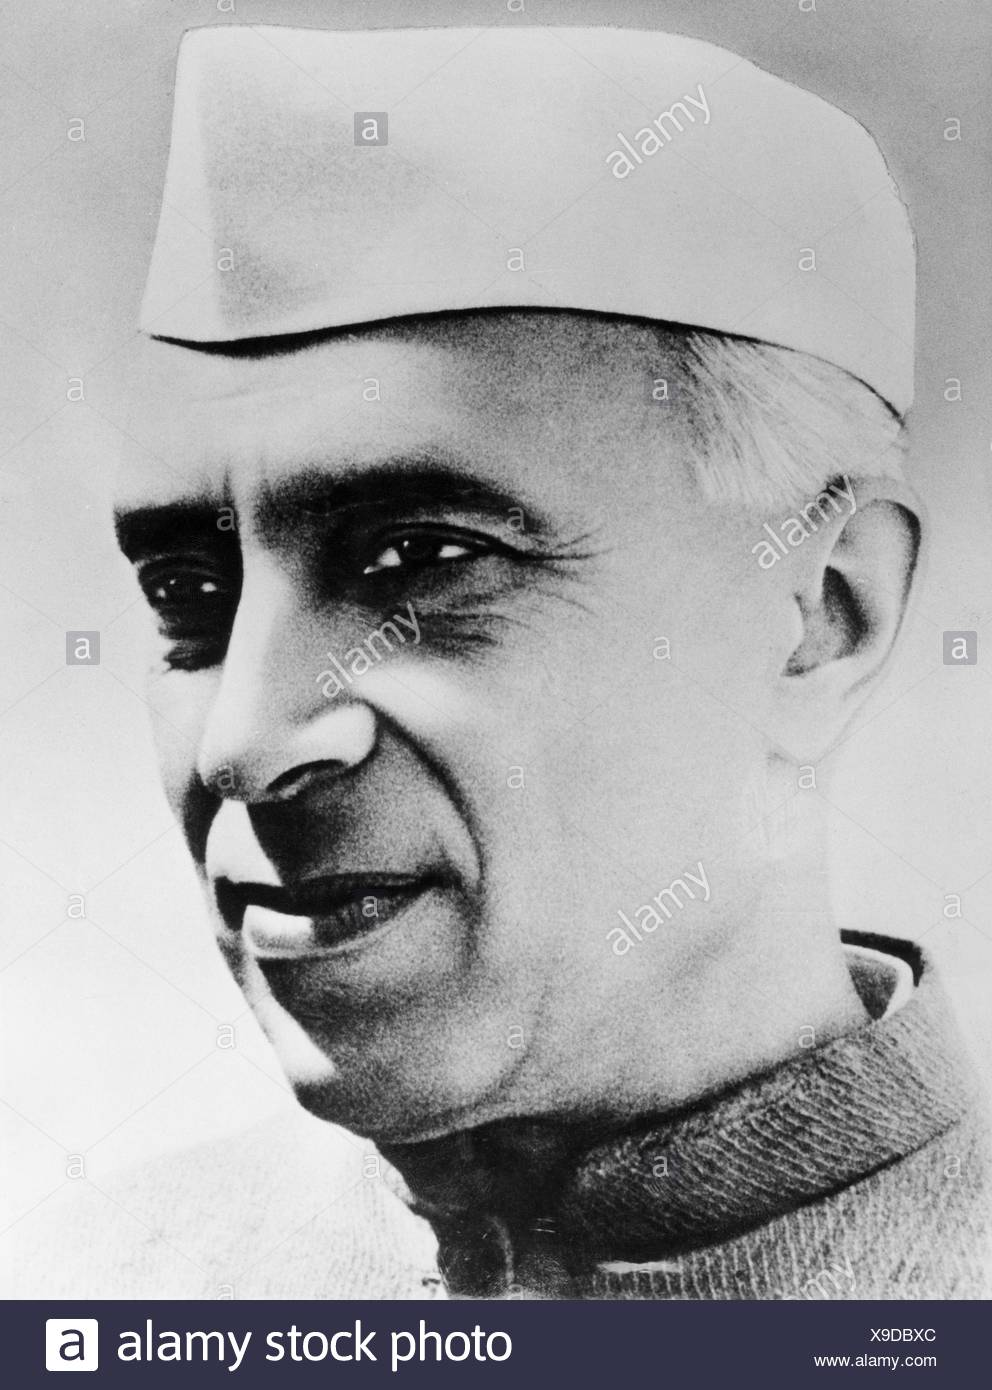 Nehru, Jawaharlal 'Pandit', 14.11.1889 - 27.5.1964, Indian politician, portrait, 1950s, Additional-Rights-Clearances-NA - Stock Image